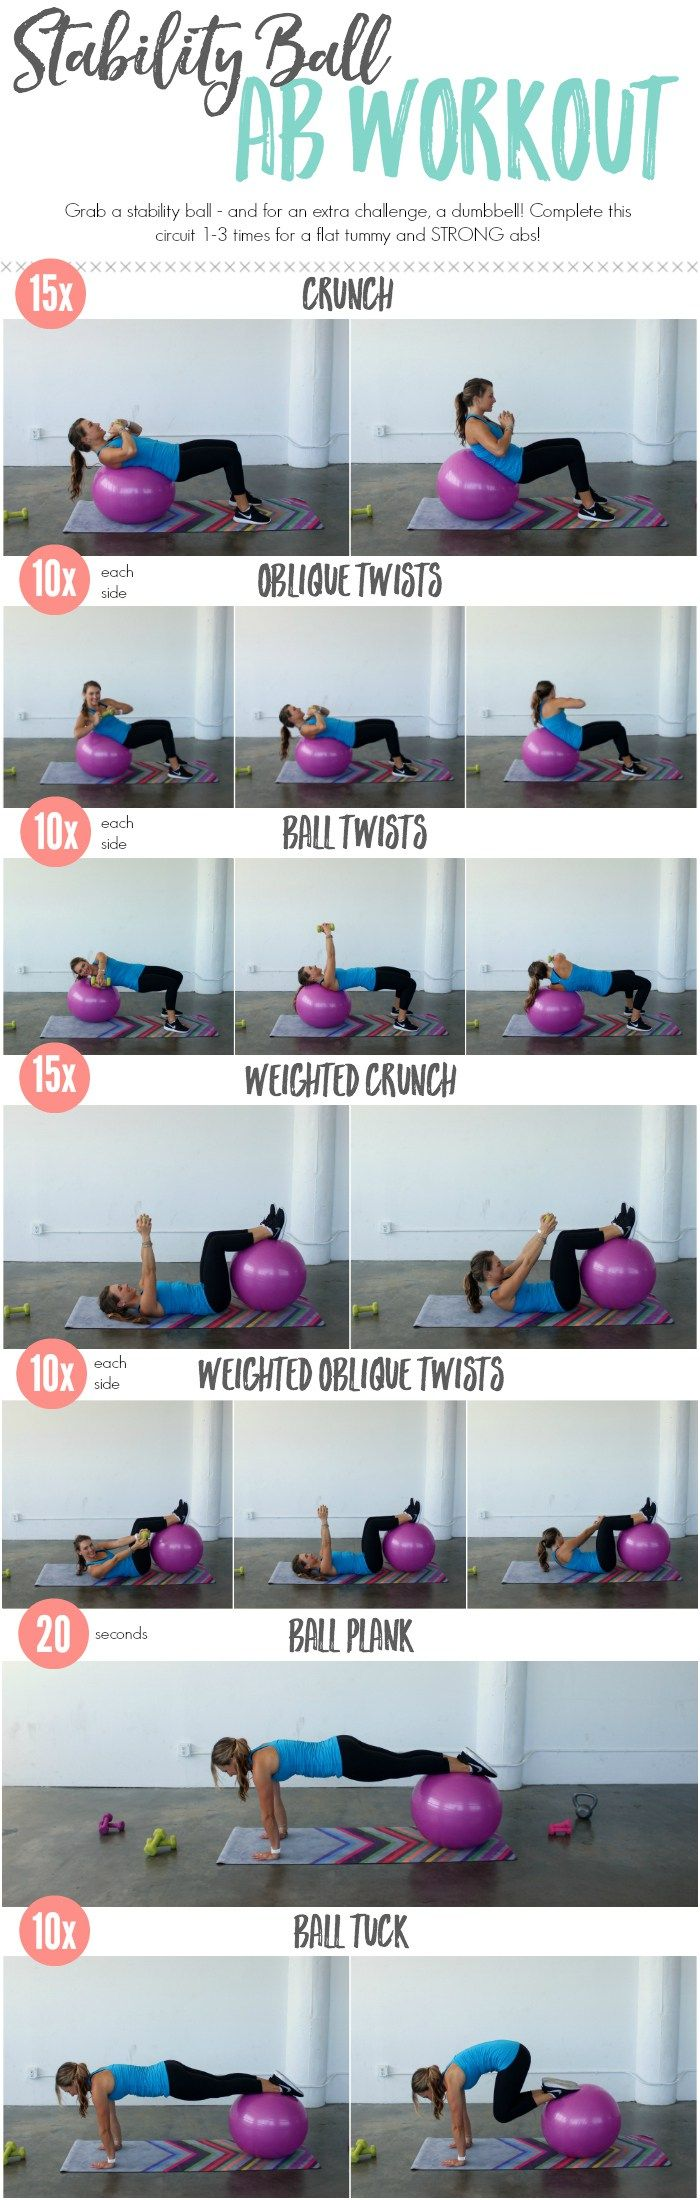 stability-ball-ab-workout                                                                                                                                                                                 More